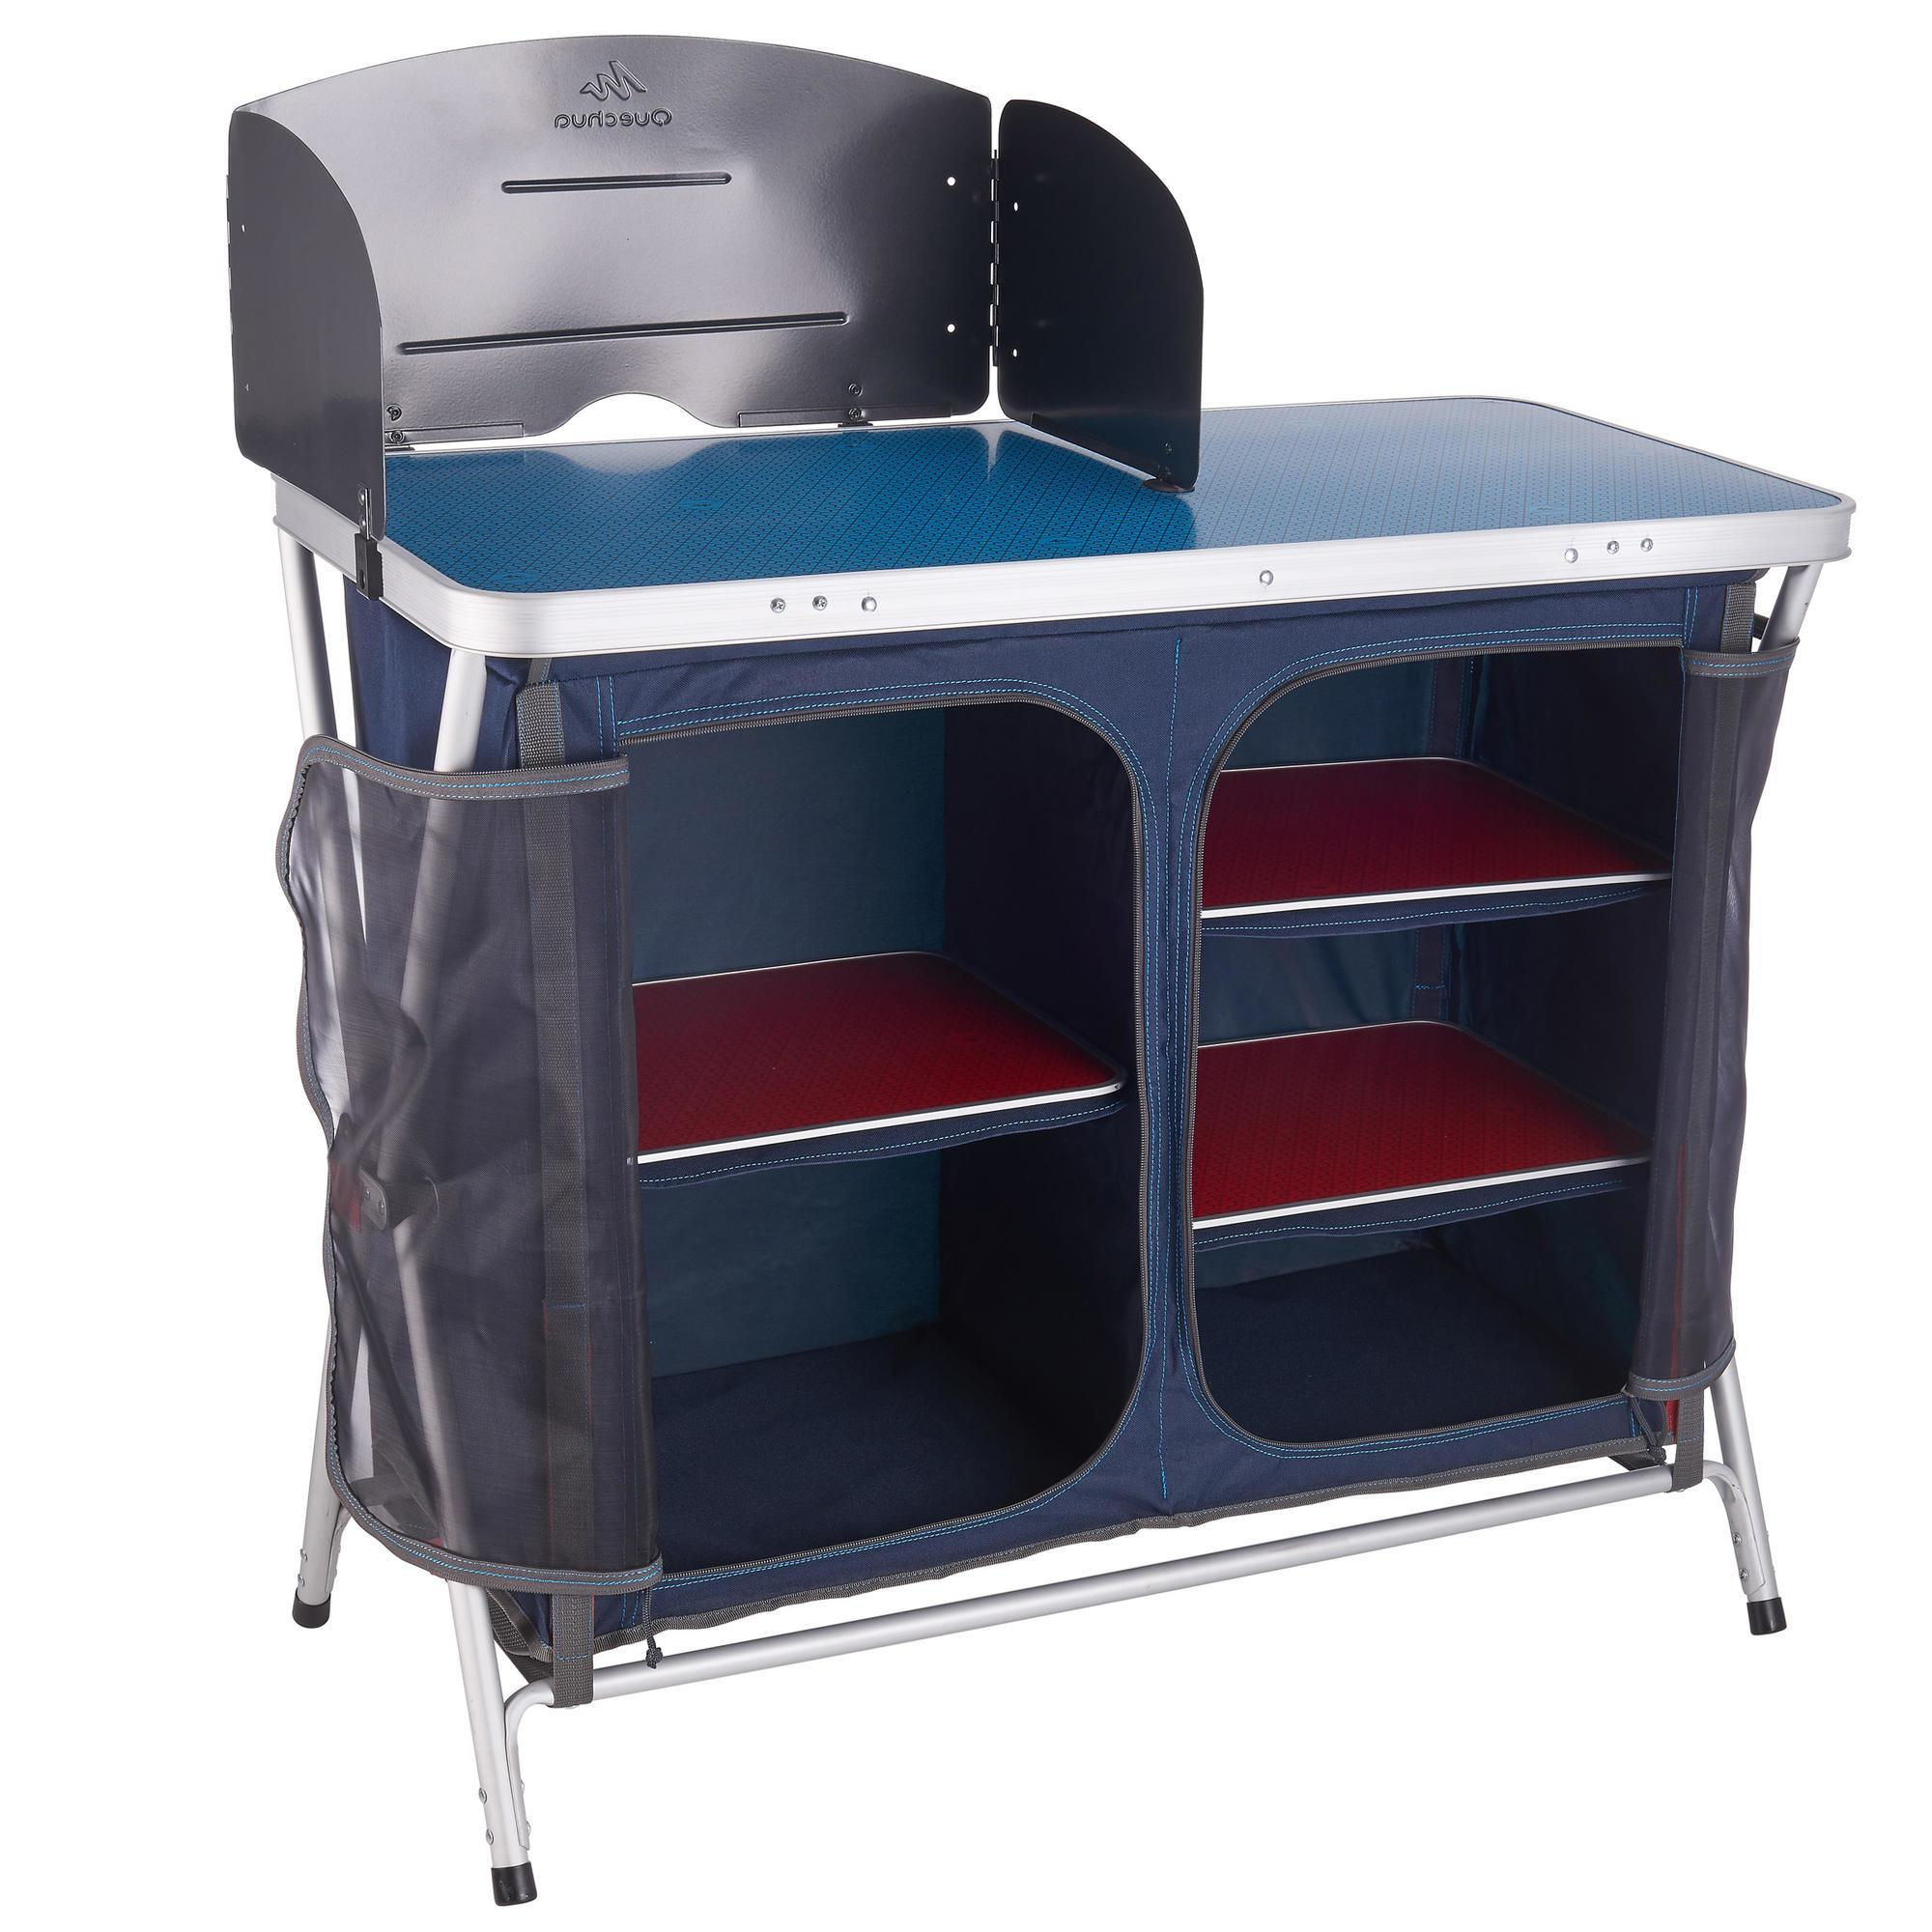 Tables et meubles | Camping | Decathlon